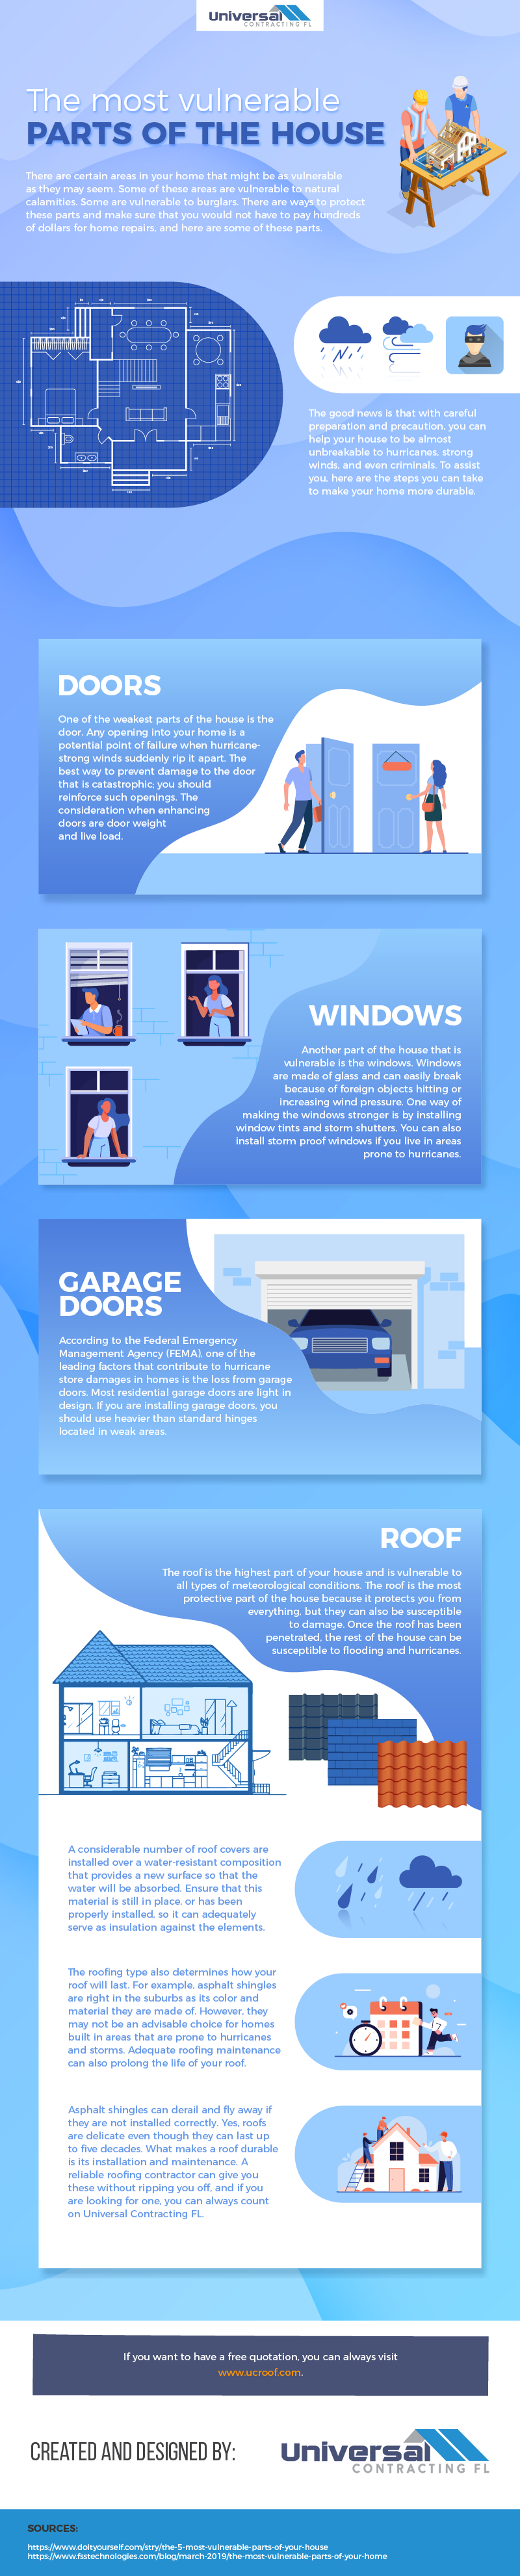 The most vulnerable parts of the house - Infographic